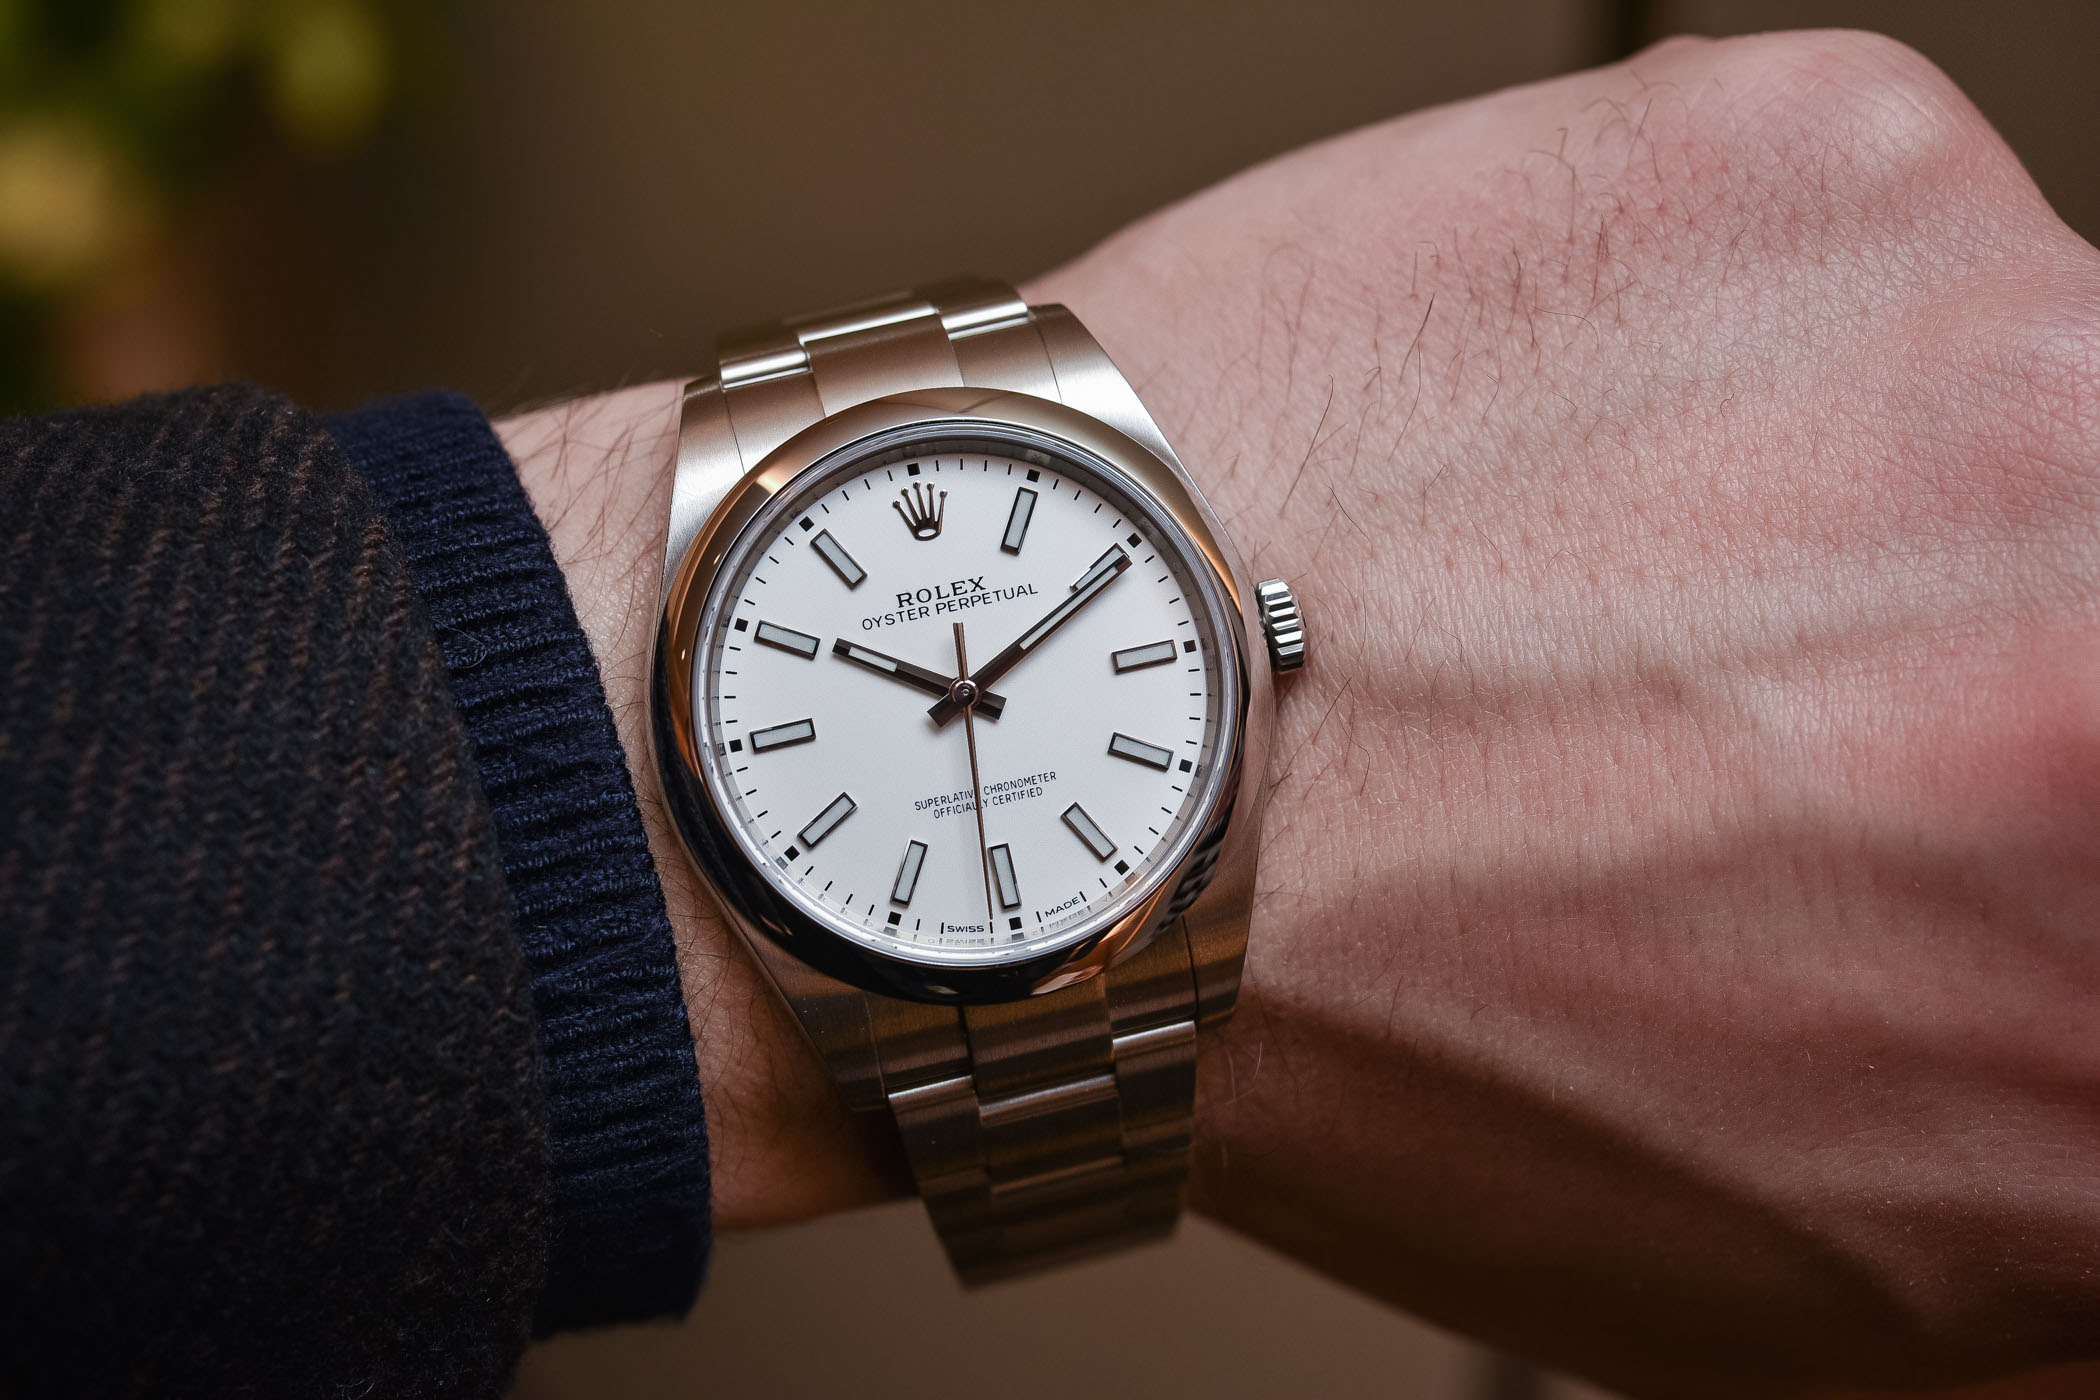 Rolex Oyster Perpetual 39 Ref 114300 White Dial Baselworld 2018